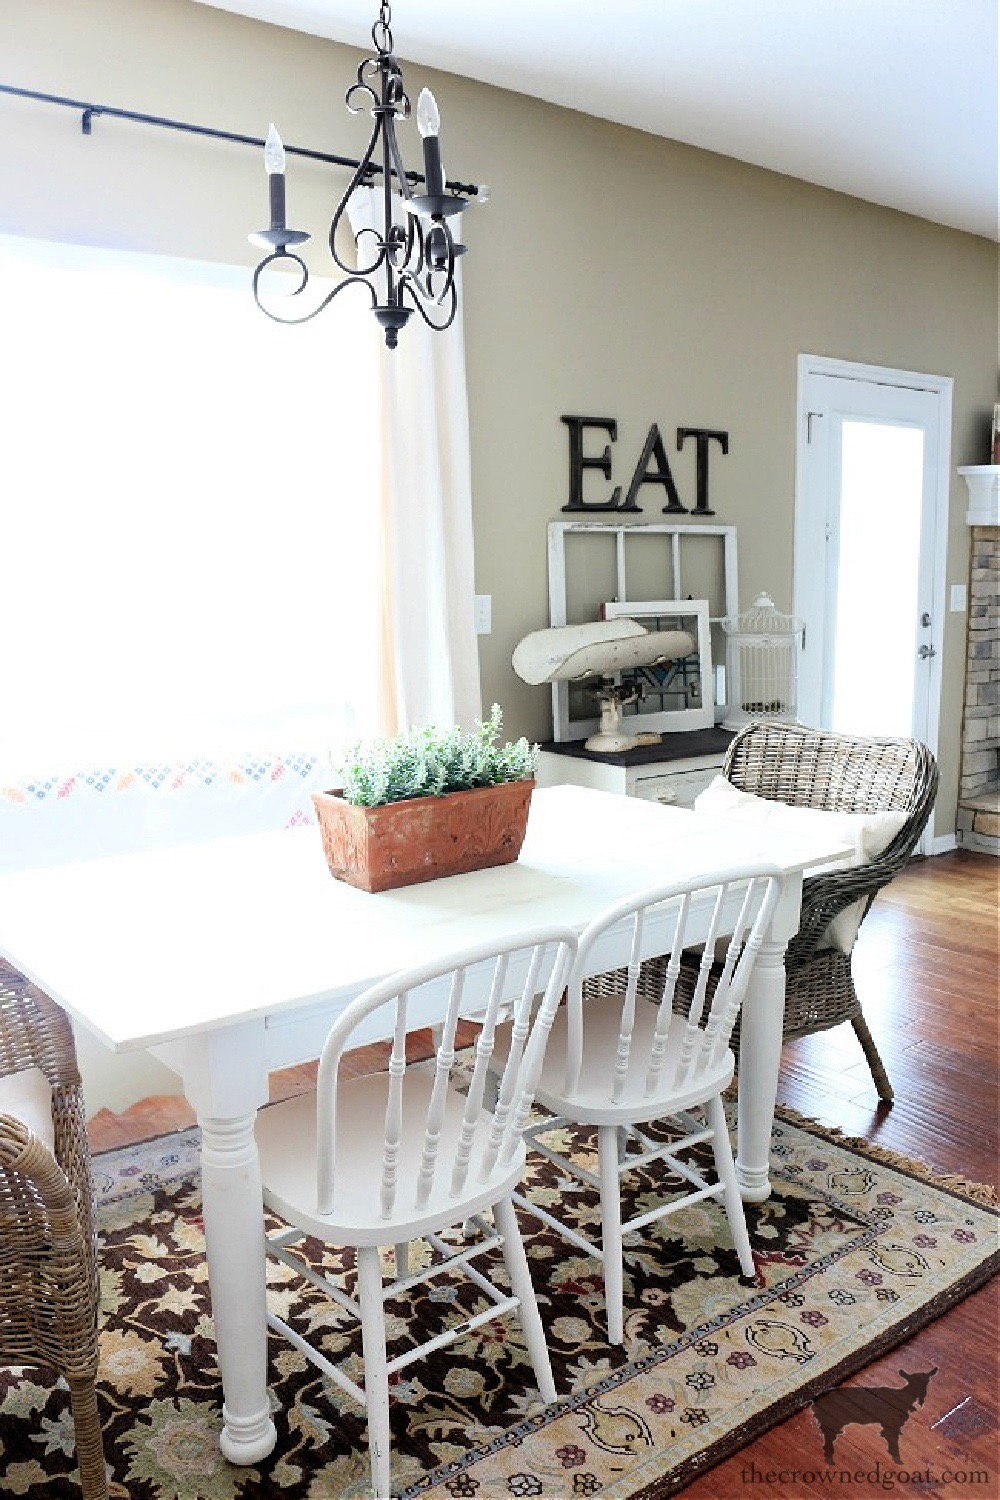 Decorating the Breakfast Area with Neutrals-The Crowned Goat